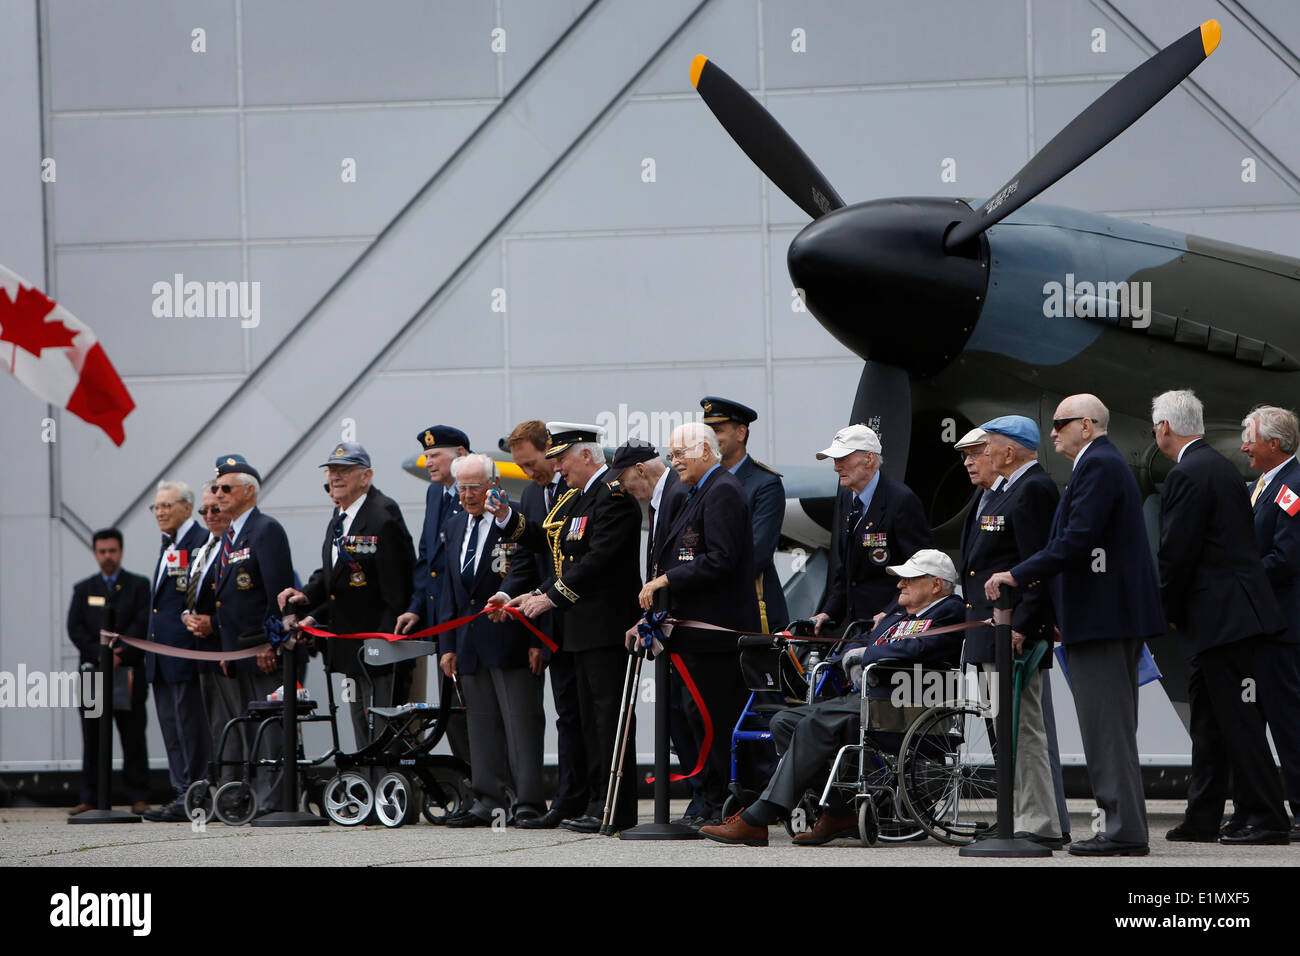 Ottawa, Canada Aviation and Space Museum in Ottawa. 6th June, 2014. Veterans participate in a ceremony marking the - Stock Image